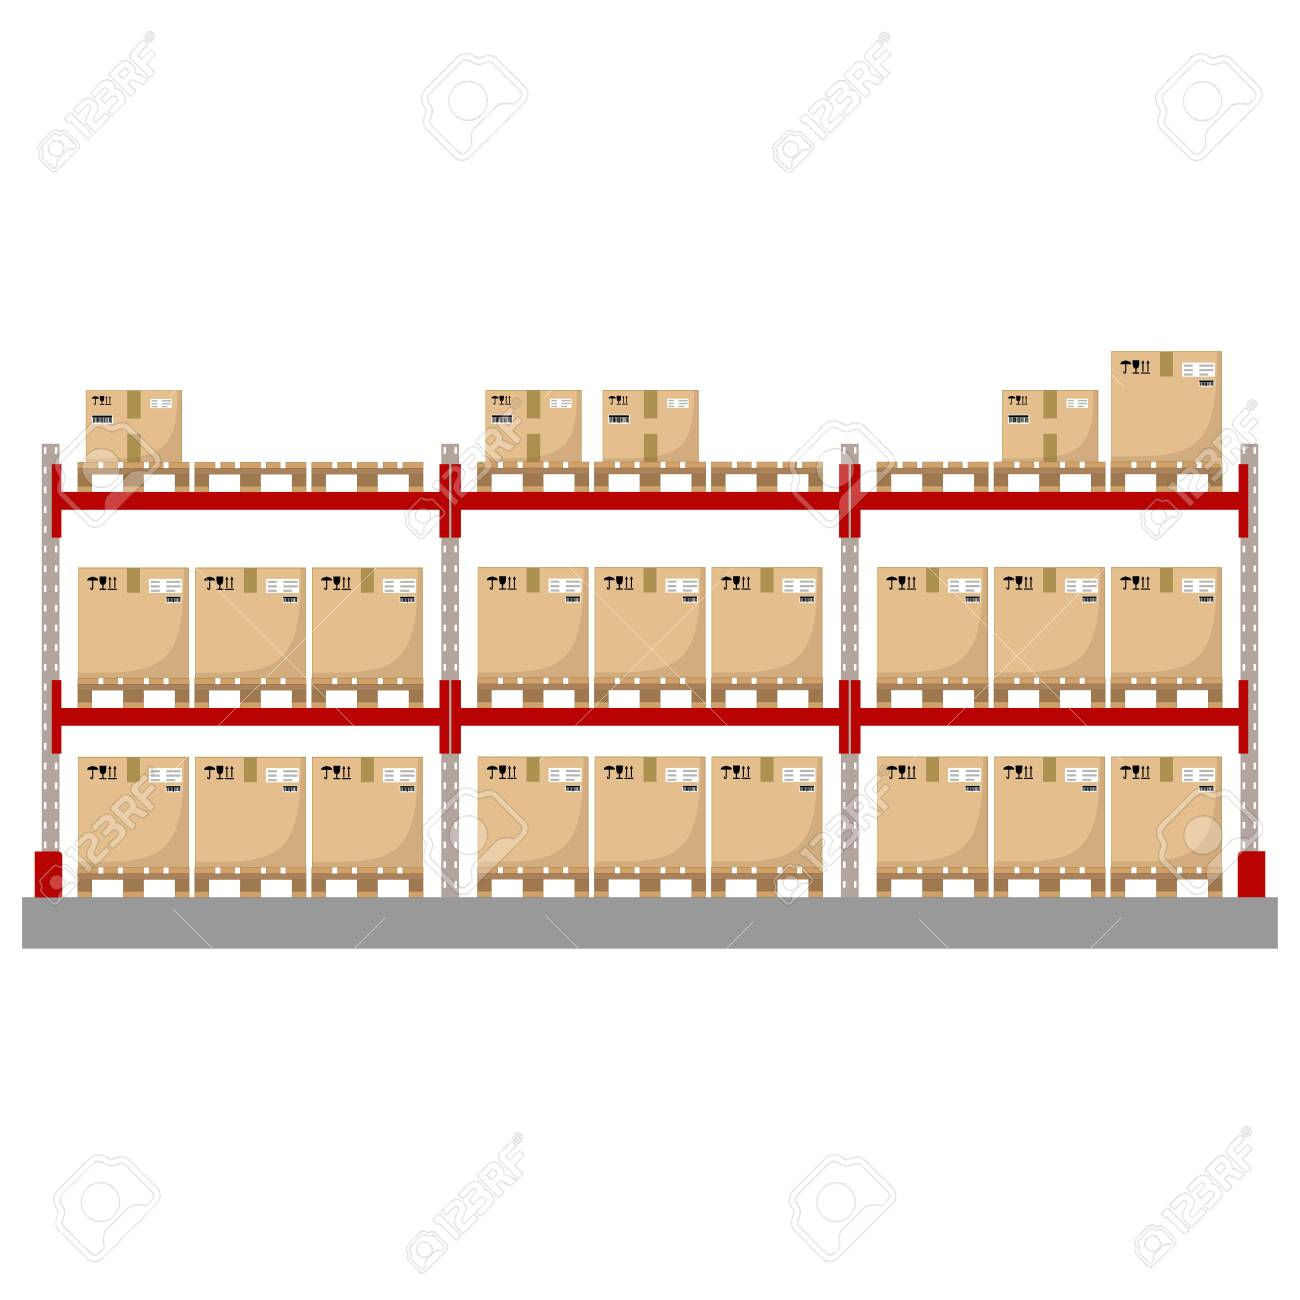 Metal racks for a warehouse with boxes on pallets. Flat design, front view. Vector illustration. - 142107844